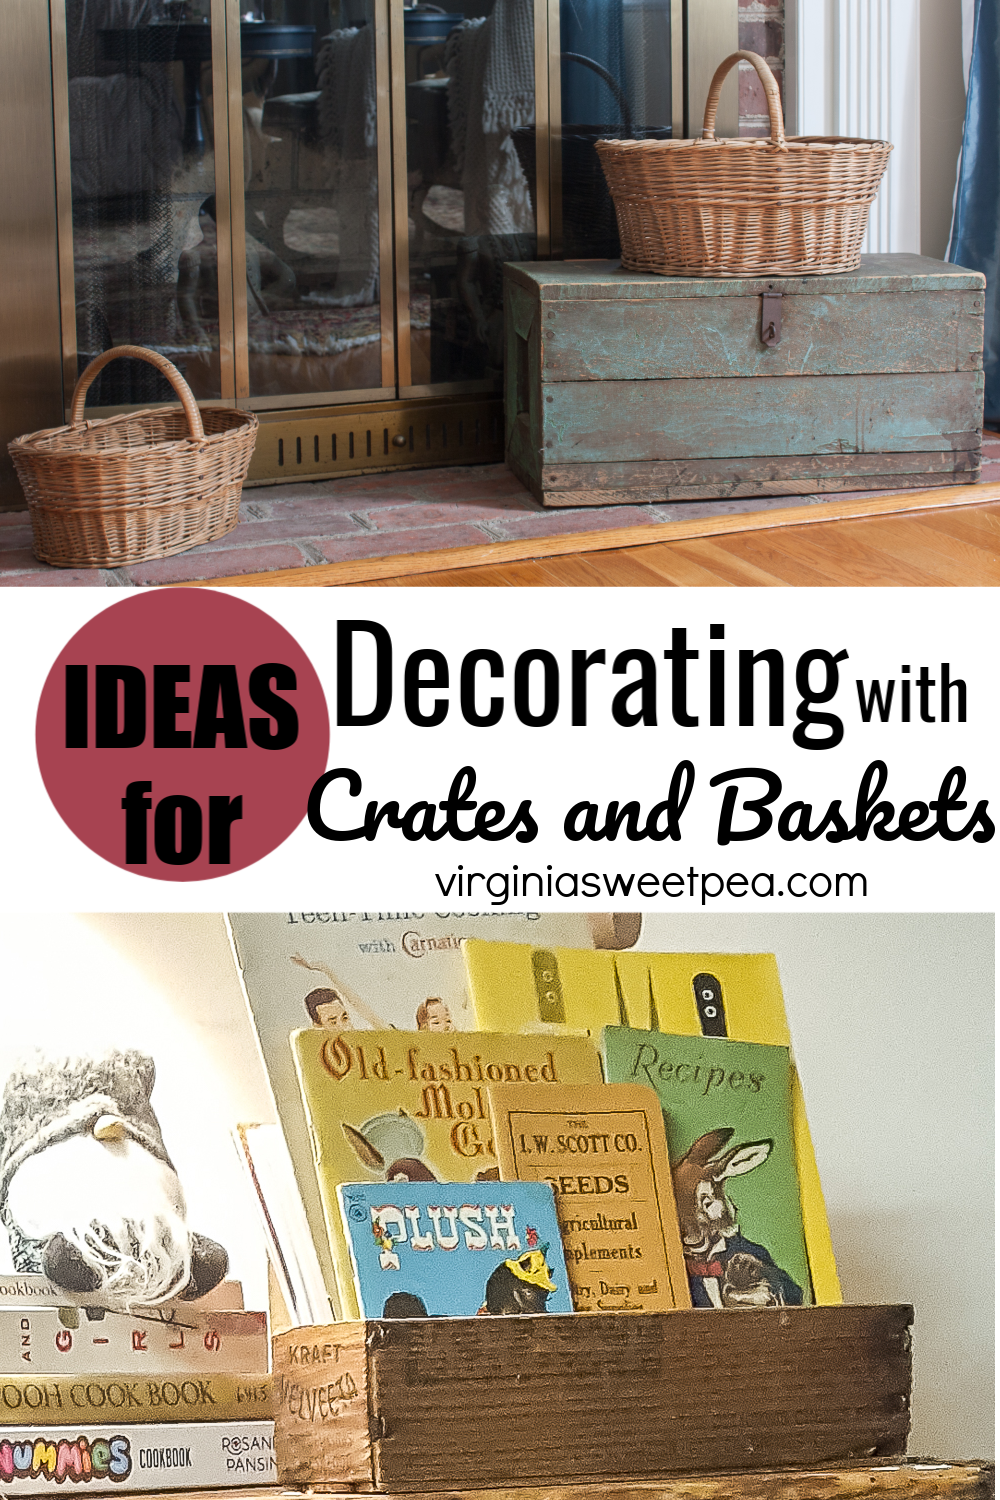 Ideas for Decorating with Vintage Crates and Baskets - Crates and baskets are great for not only decorating but also for organizing. Get ideas for using vintage crates and baskets in your home. #decoratingwithvintage #vintagehomedecor via @spaula